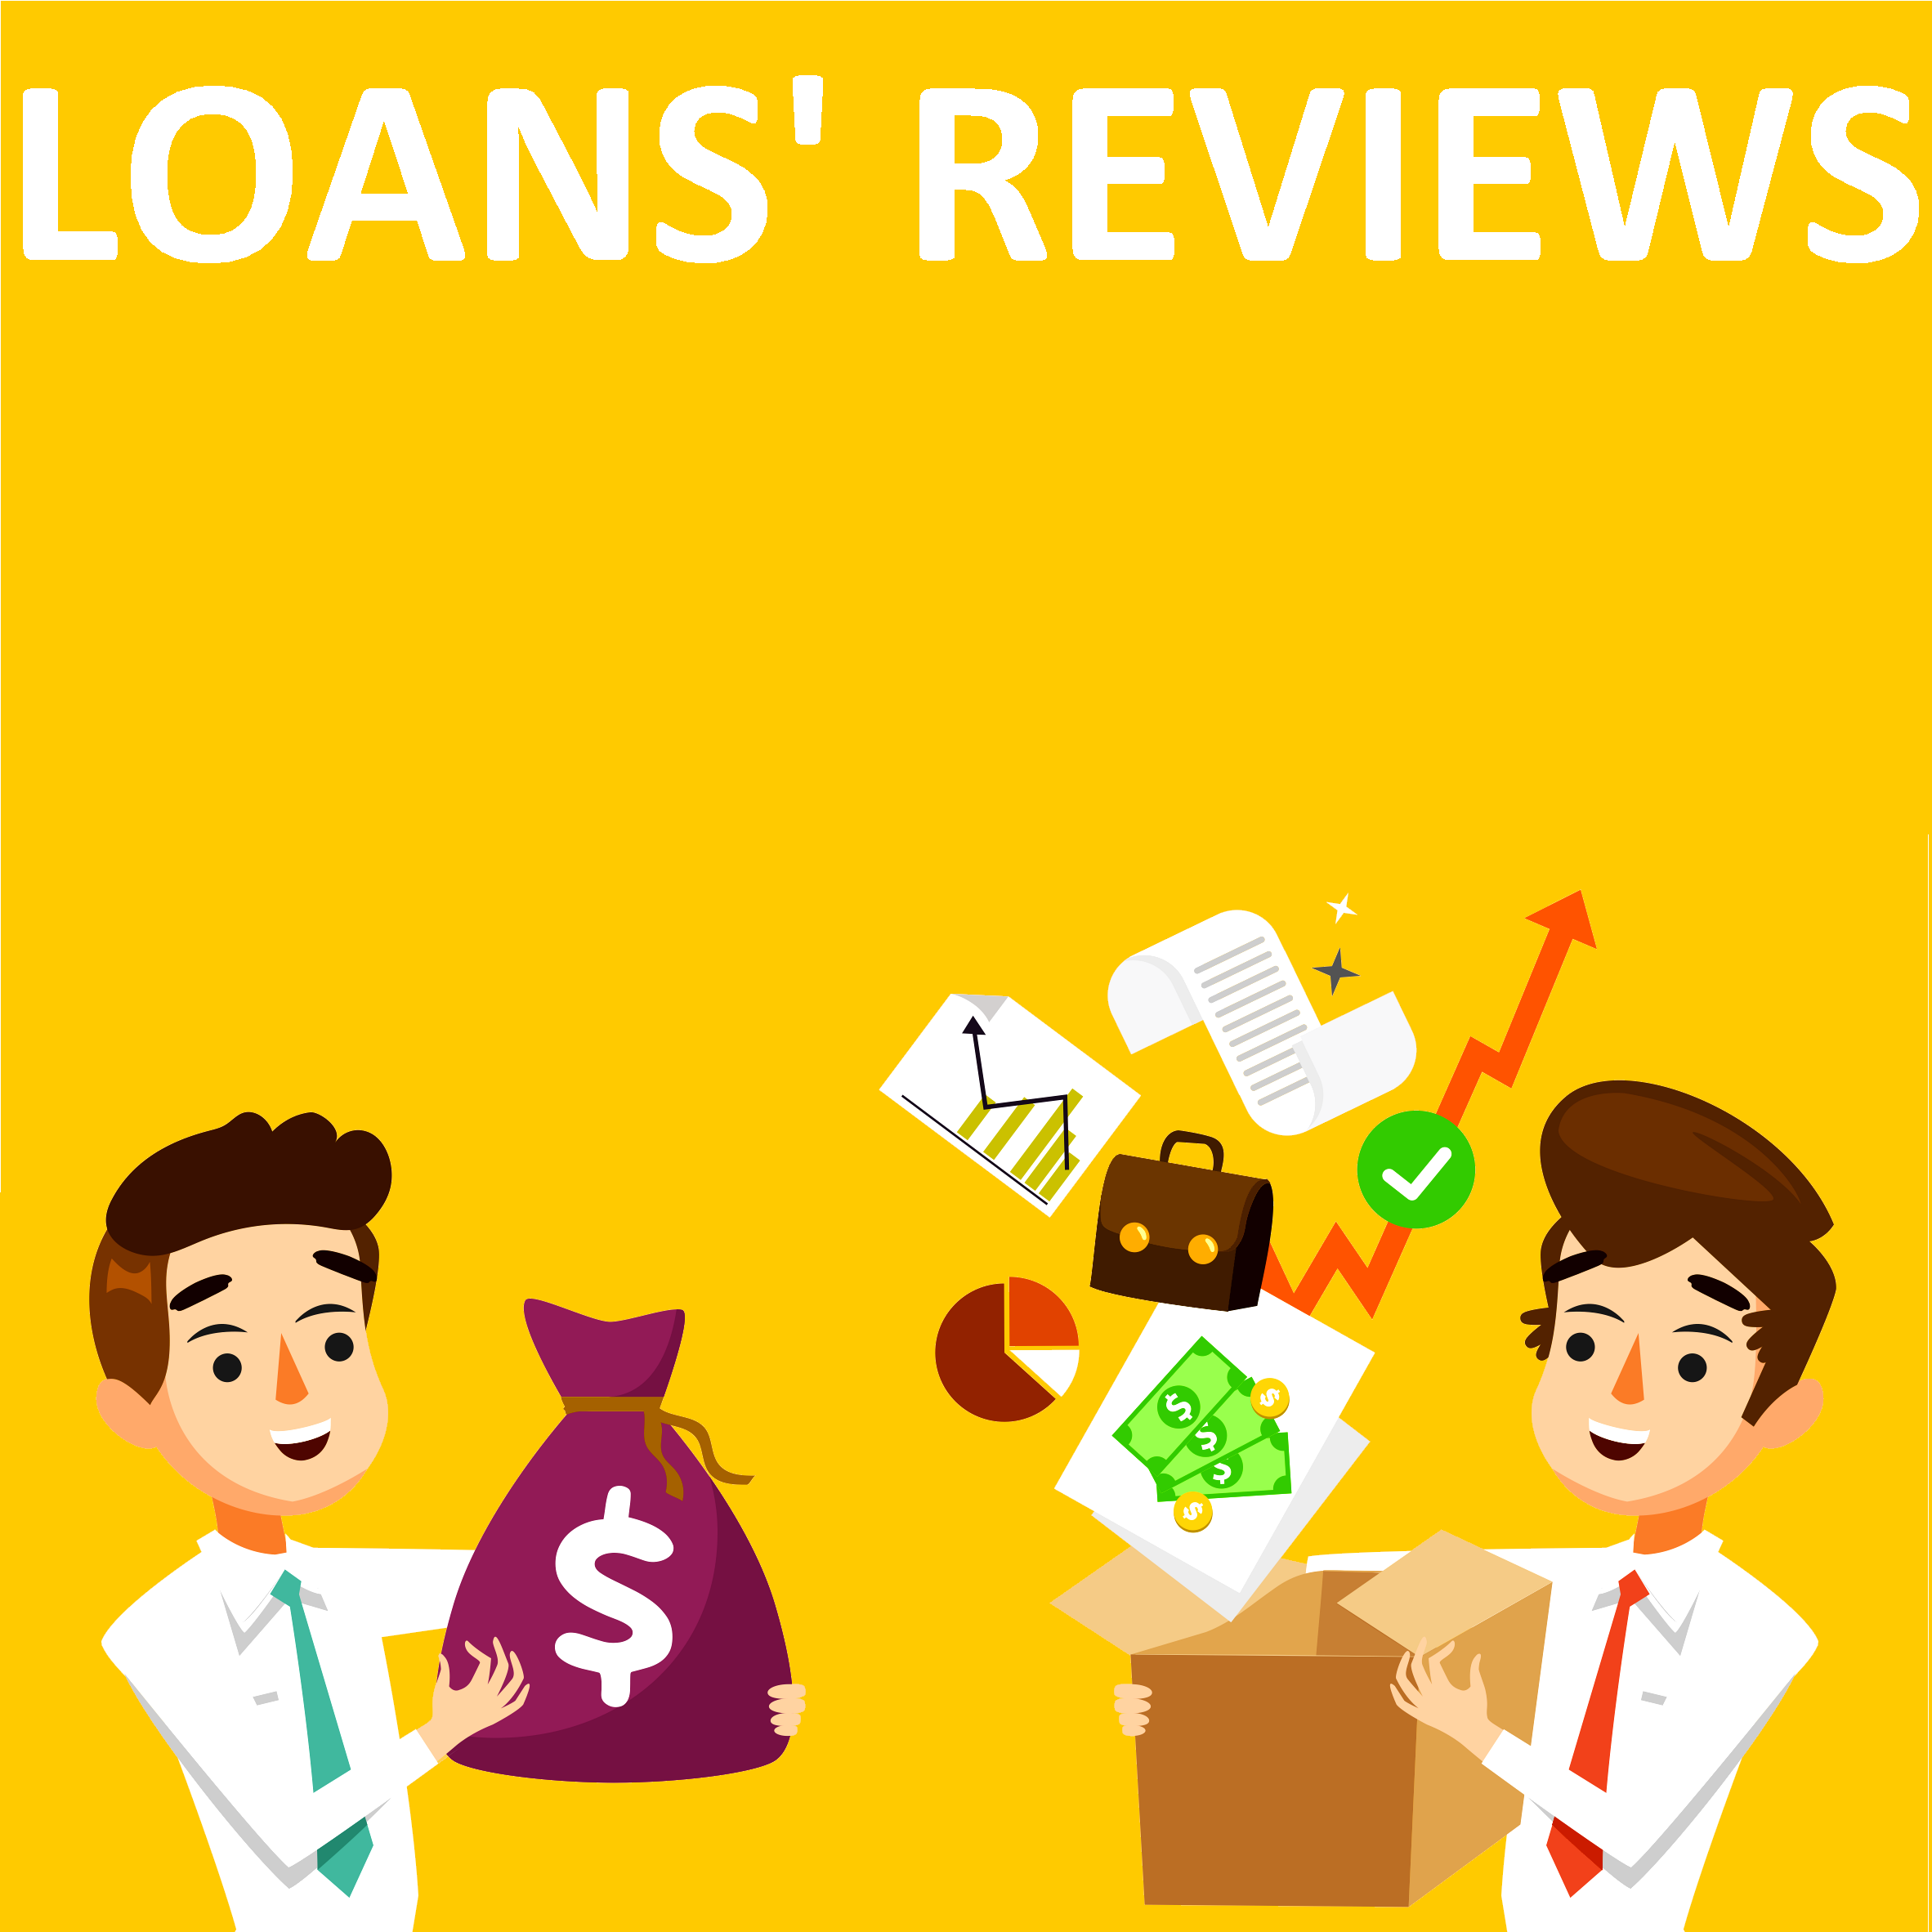 Loans' Reviews